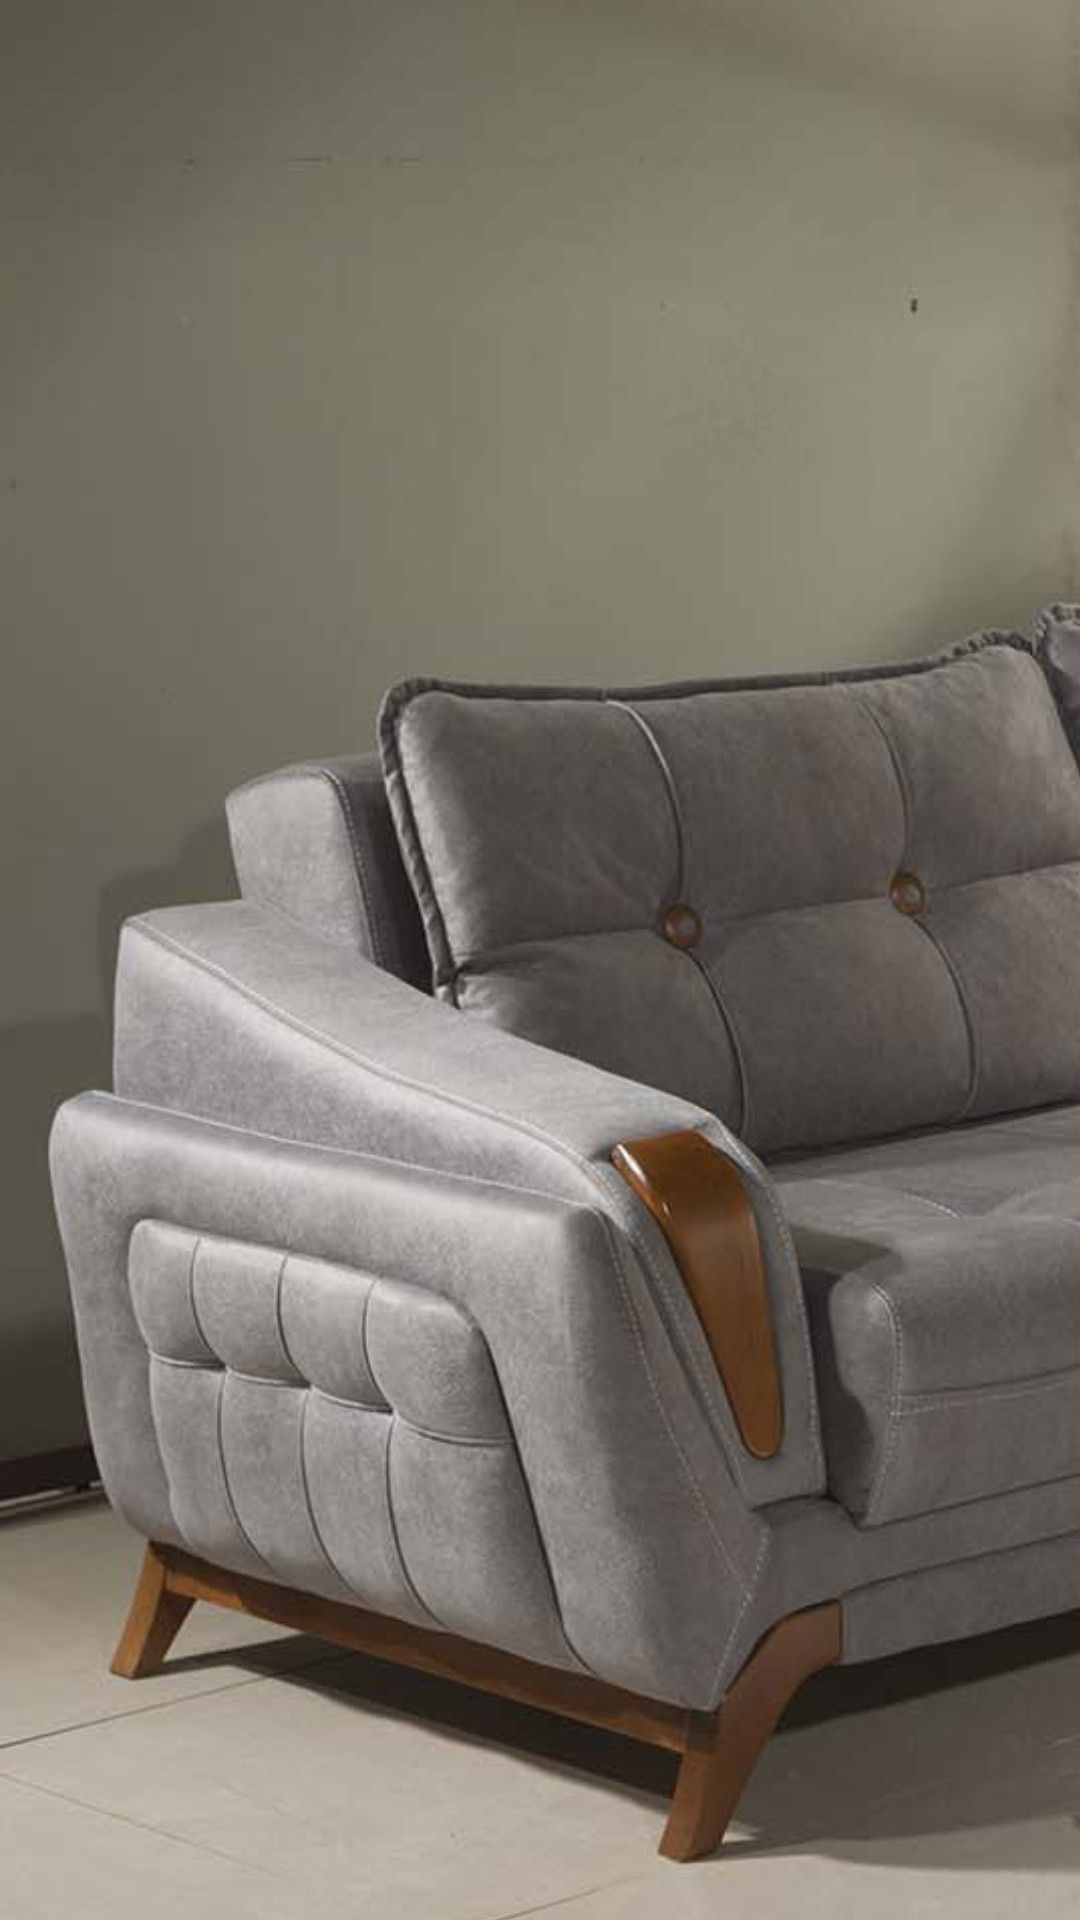 Pin By Murat Kasap On Mmncakir Sofa Design Couch Furniture Sofa Pictures